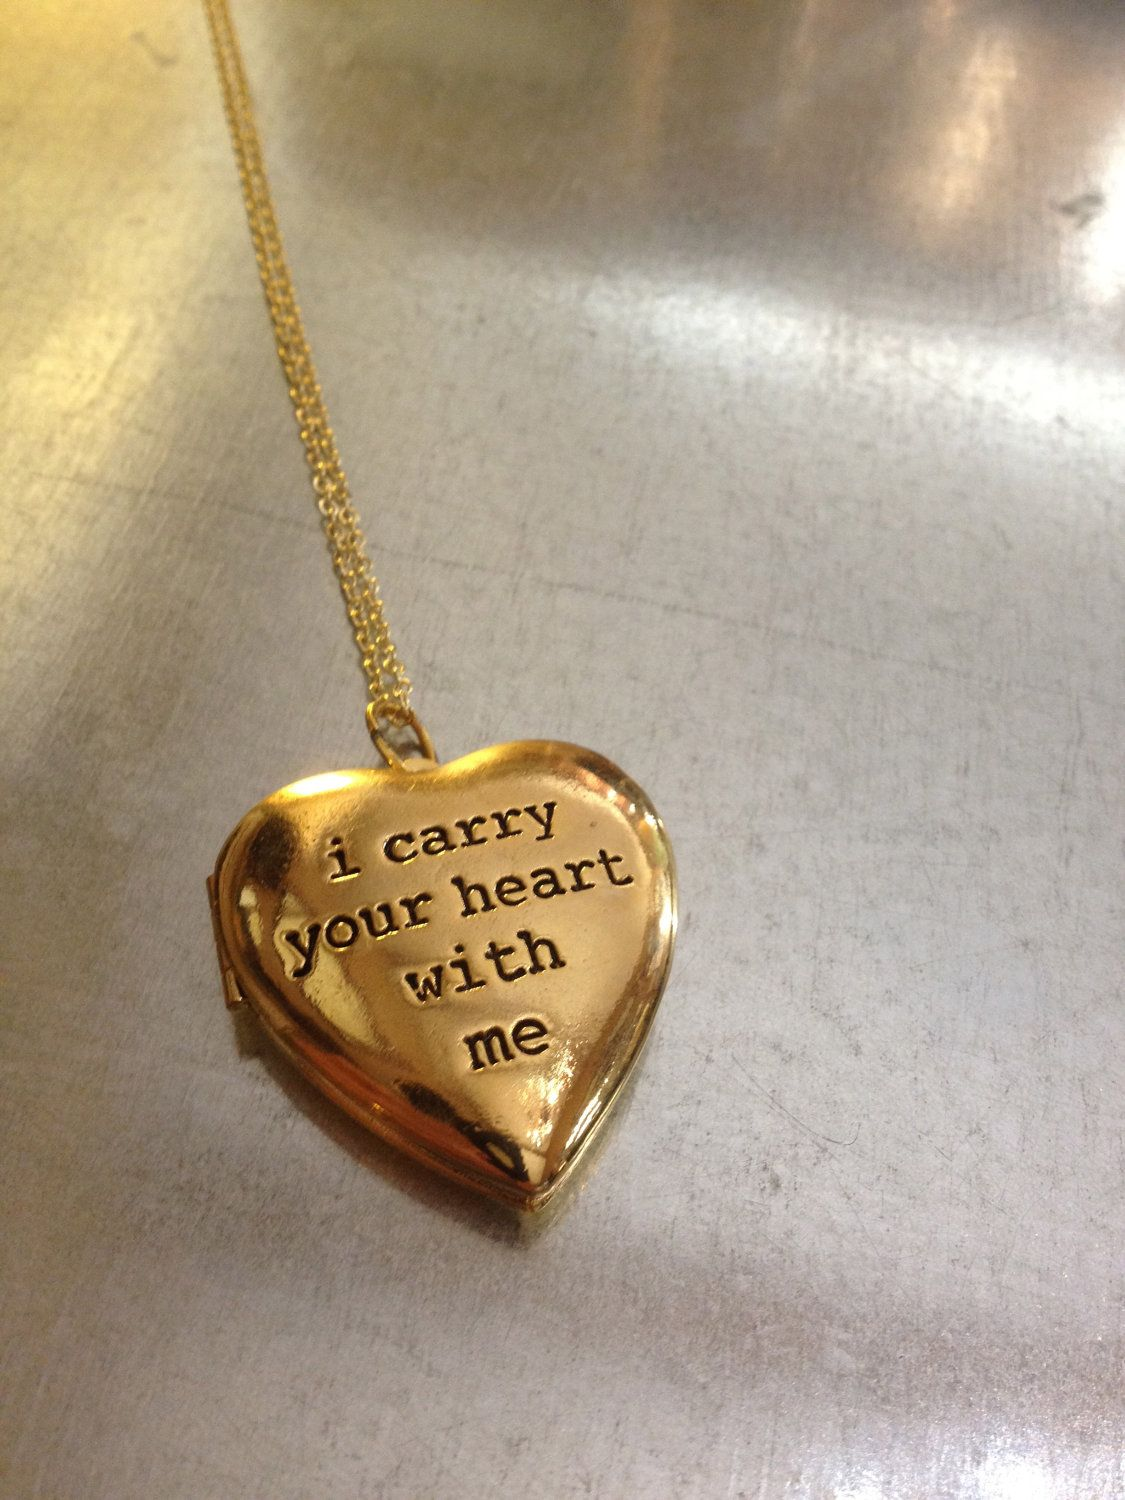 I Carry Your Heart With Me Gold Plated Heart Locket Heart Locket I Carry Your Heart Gold Heart Locket Gold Locket Gift For Her Heart Locket Necklace Heart Locket Cute Jewelry